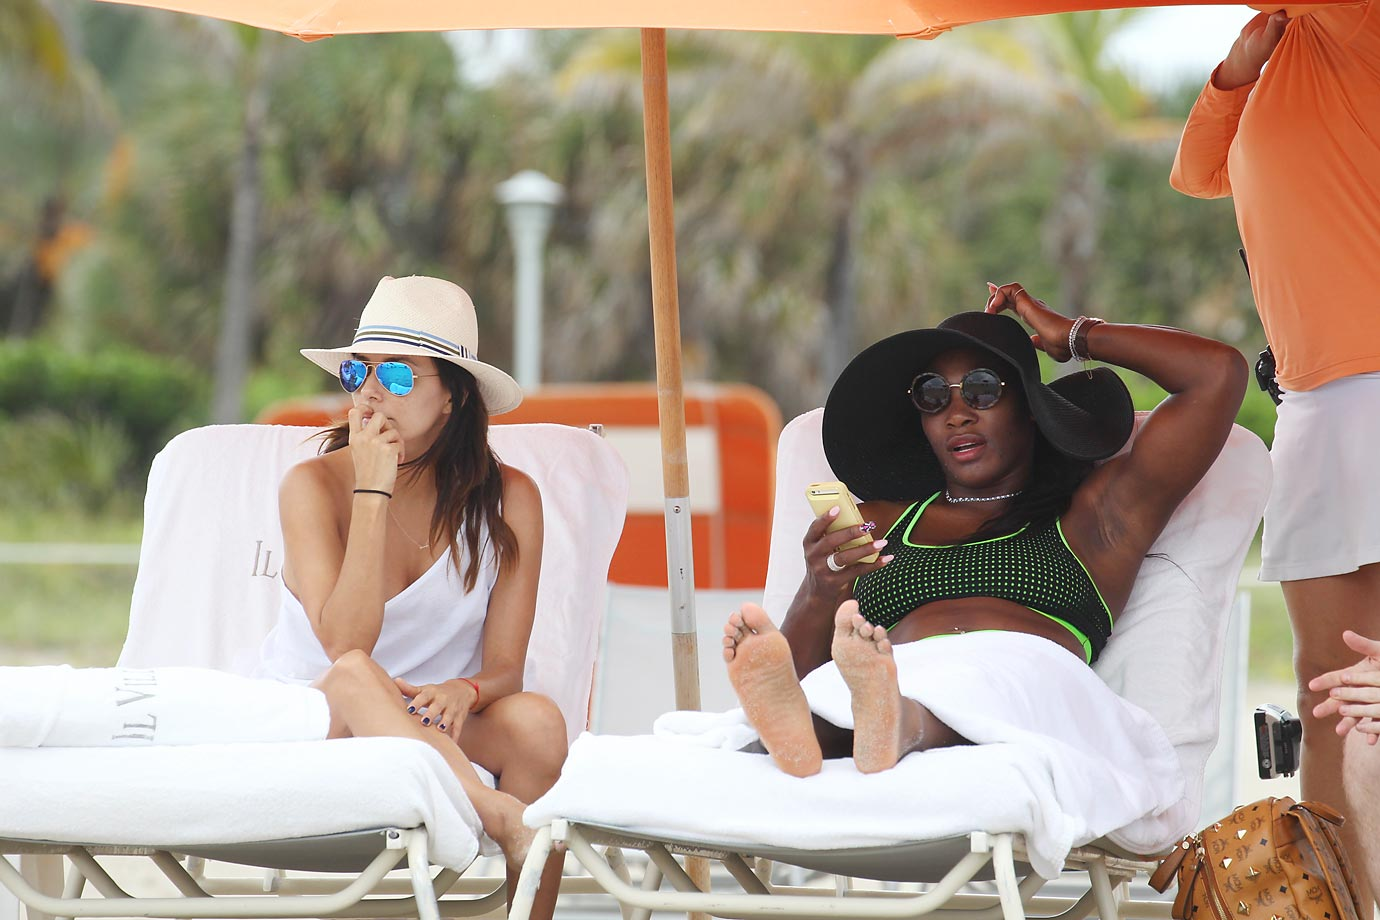 Eva Longoria and Serena Williams on a beach in Miami last week.